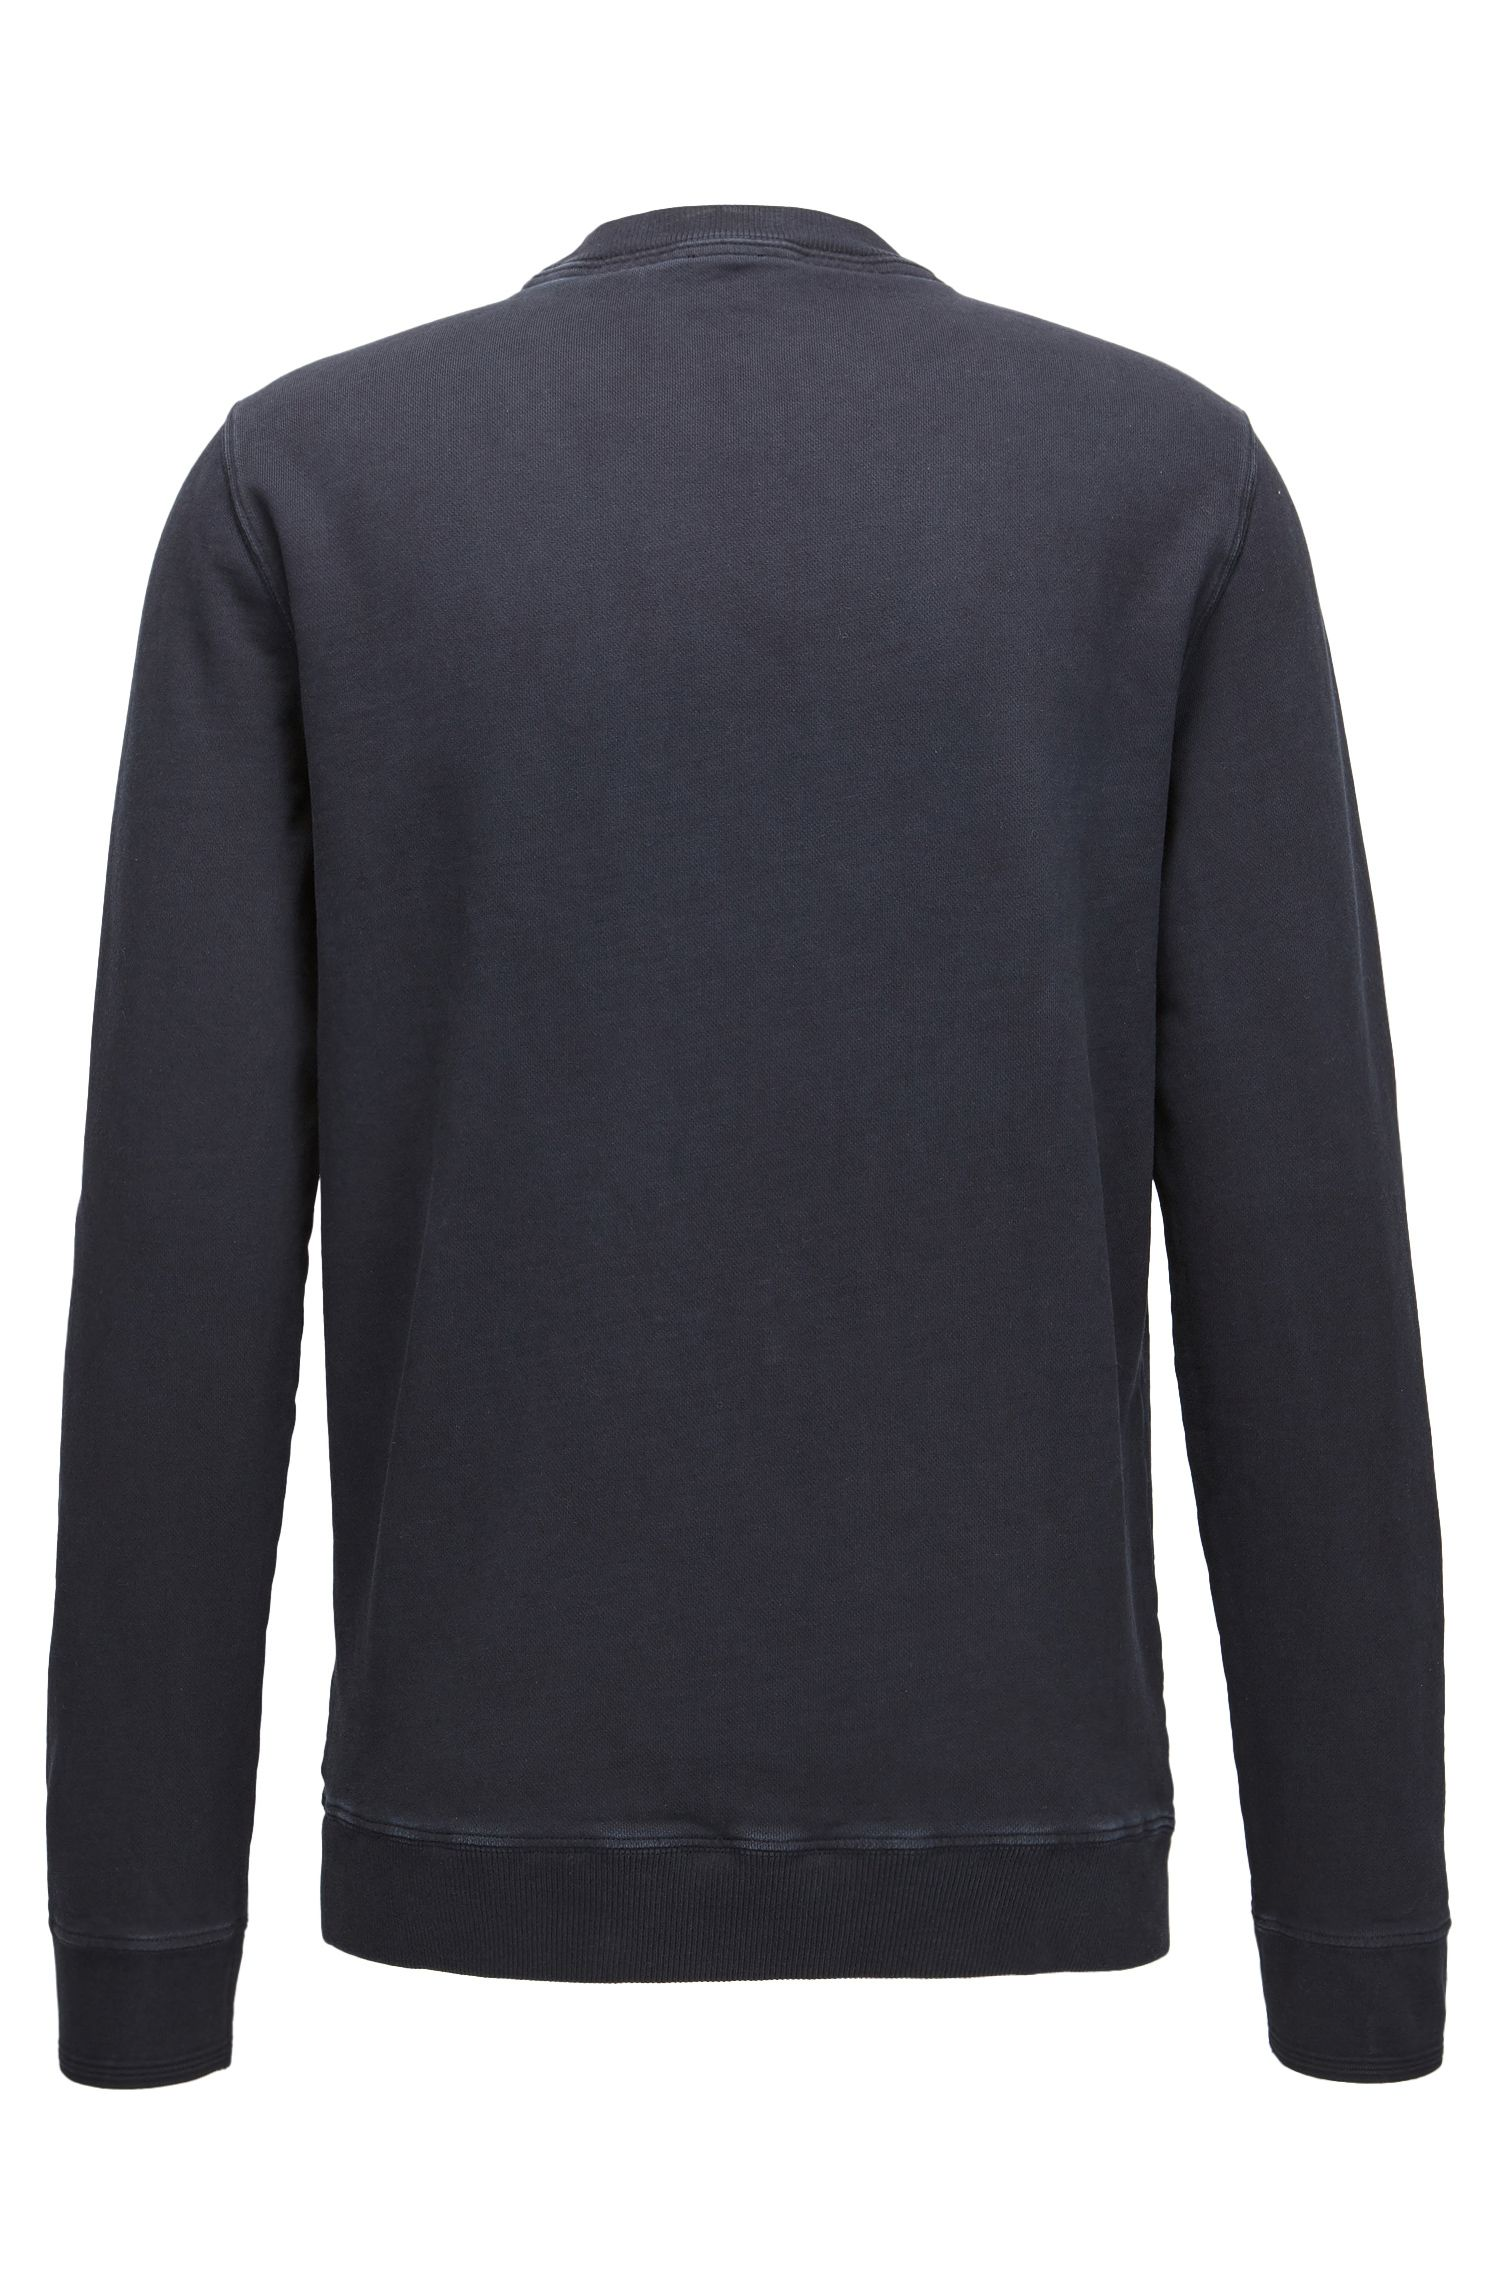 Logo sweater in garment-dyed cotton